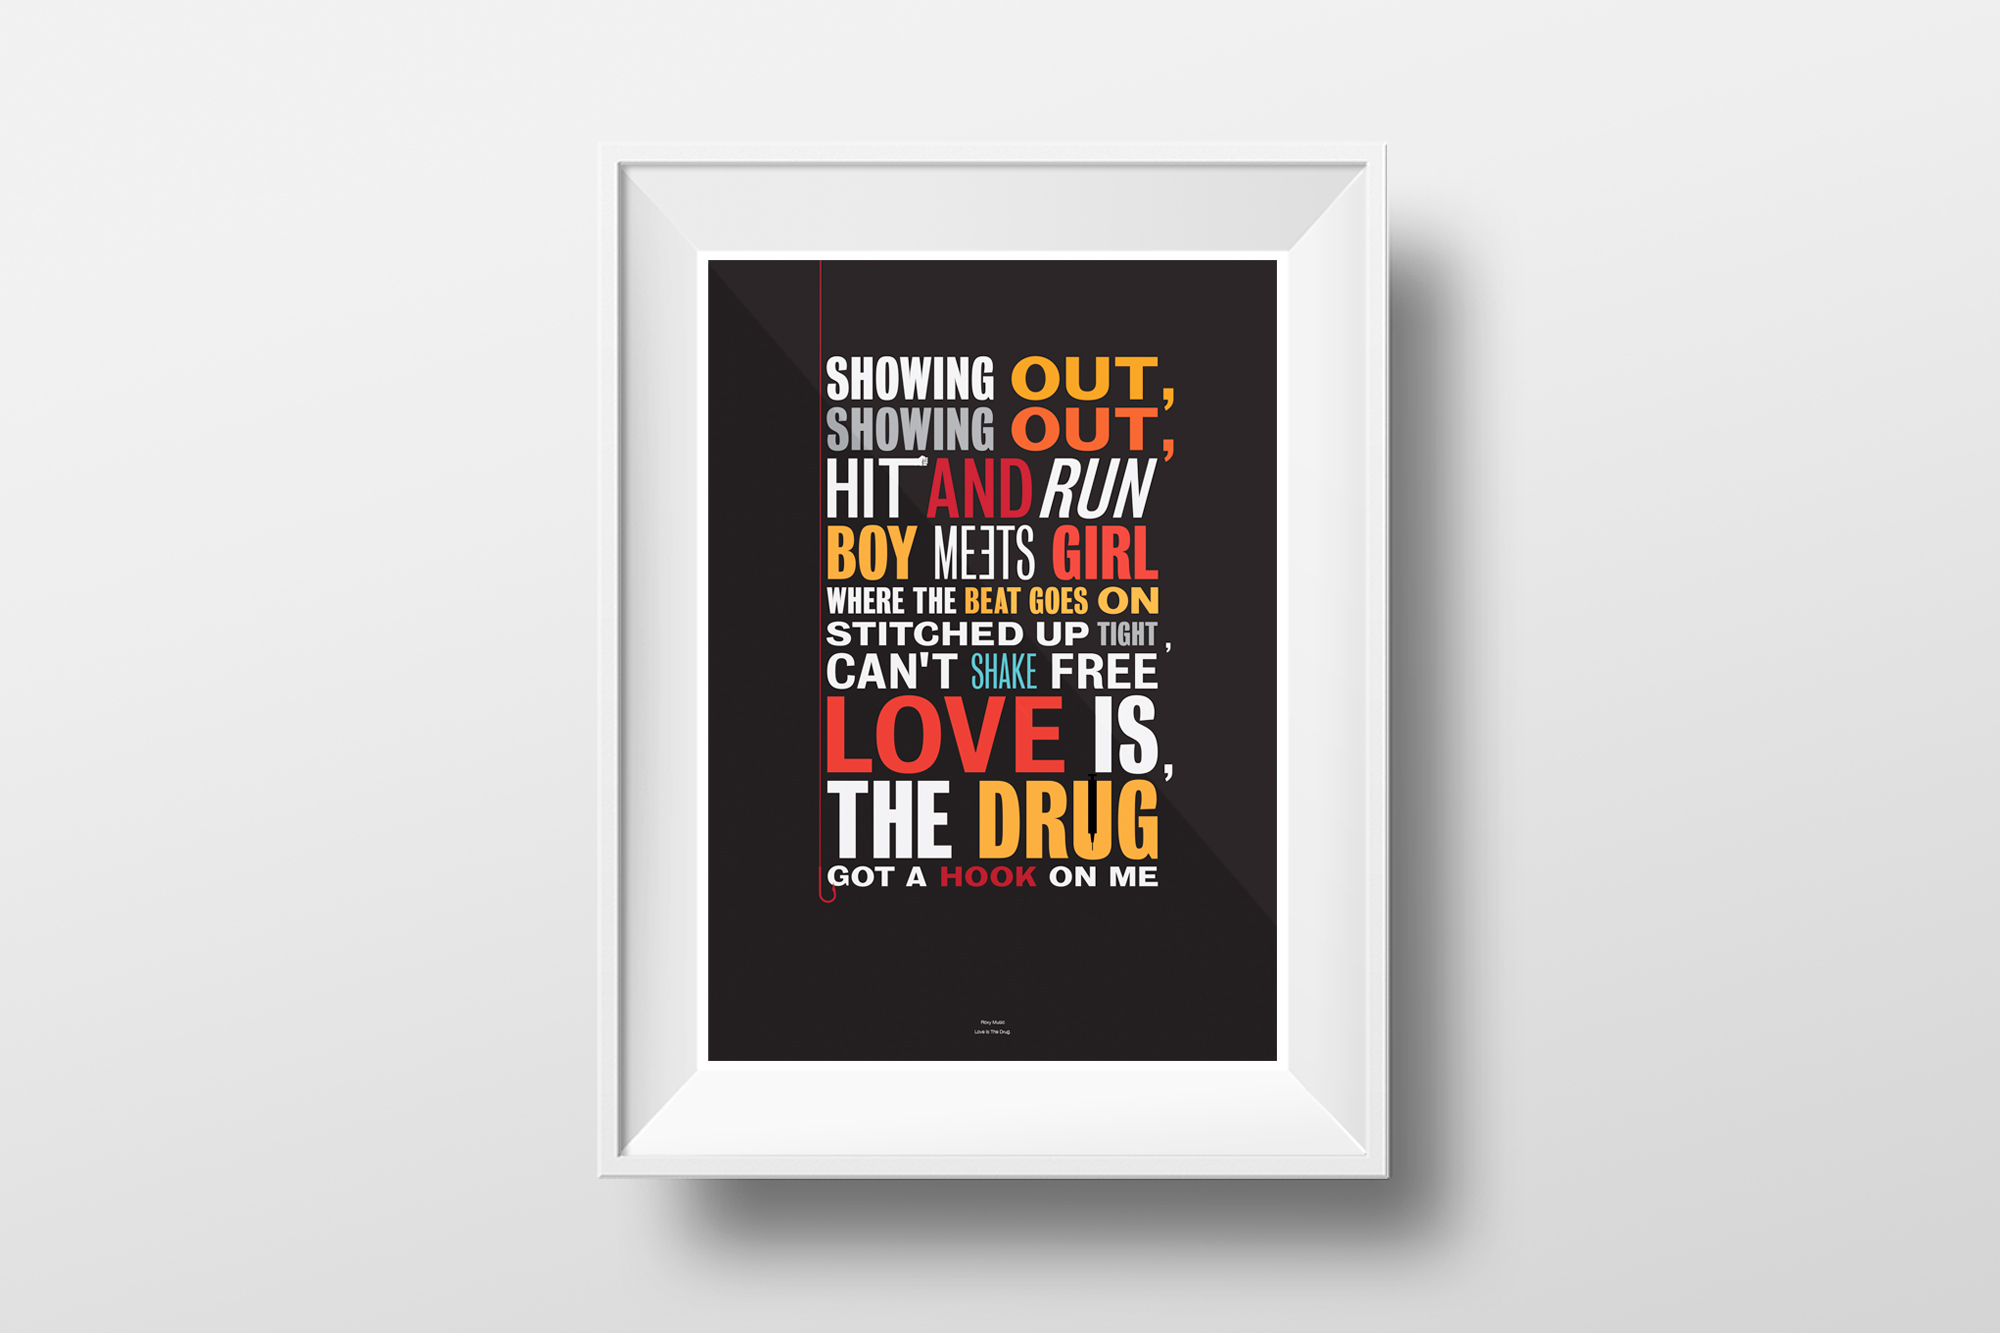 GPJ-typo-posters-Roxy-Music-Love-is-the-Drug